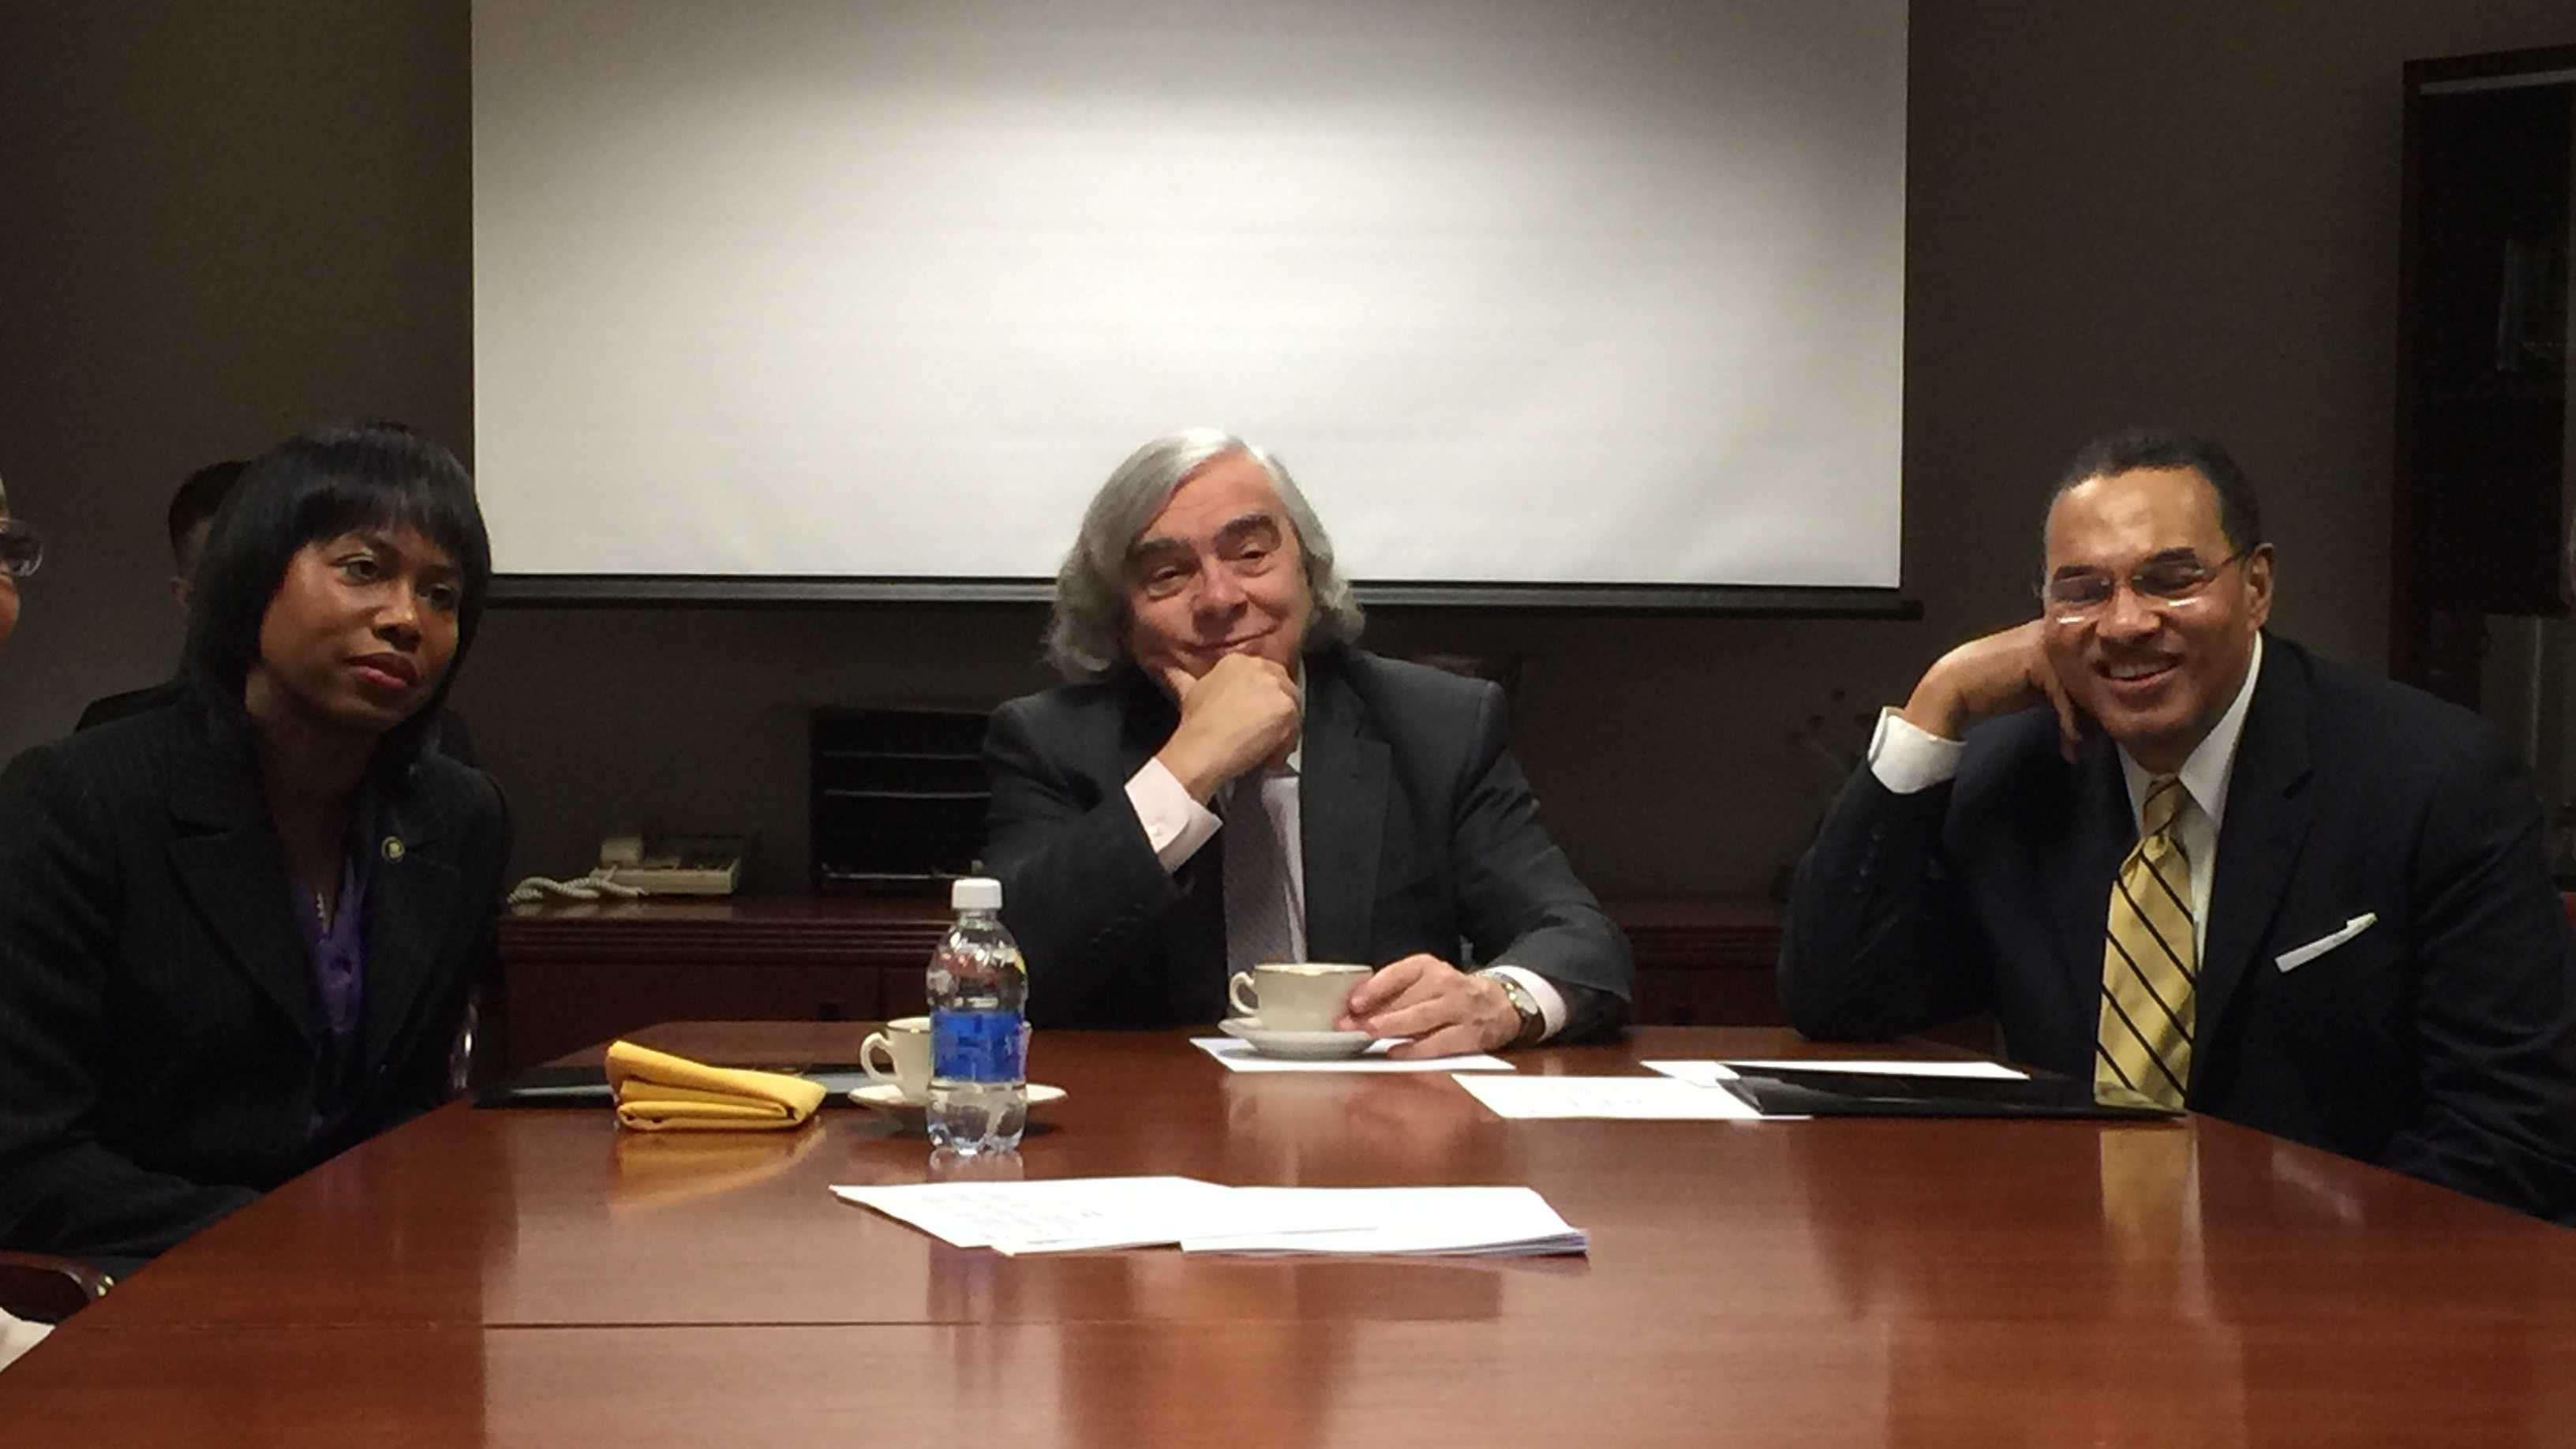 Energy Secretary Ernest Moniz visits the University of Maryland, Baltimore County